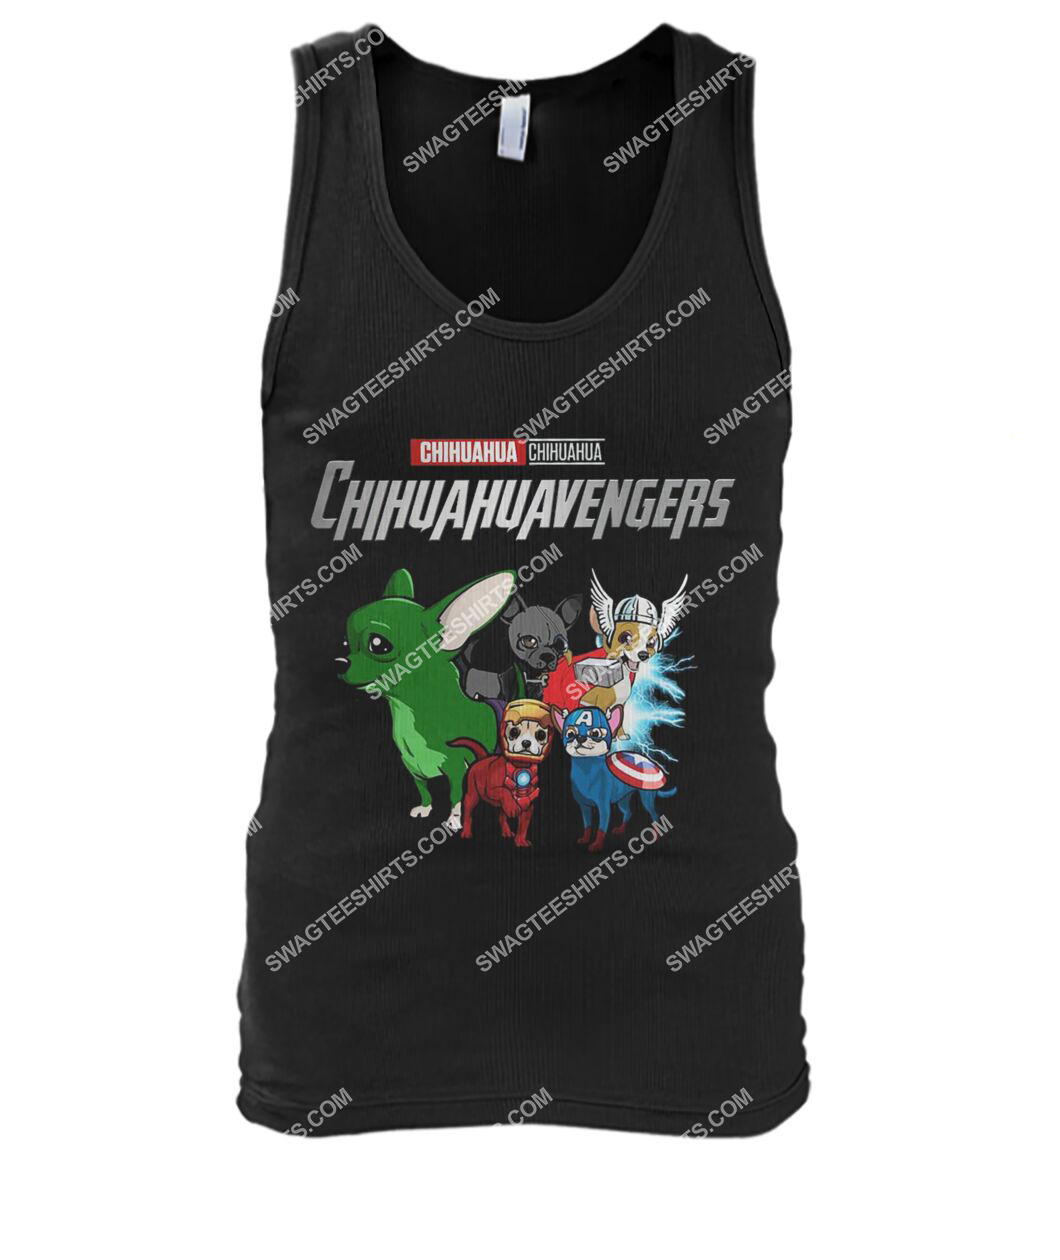 chihuahua chihuahuavengers marvel avengers dogs lover tank top 1